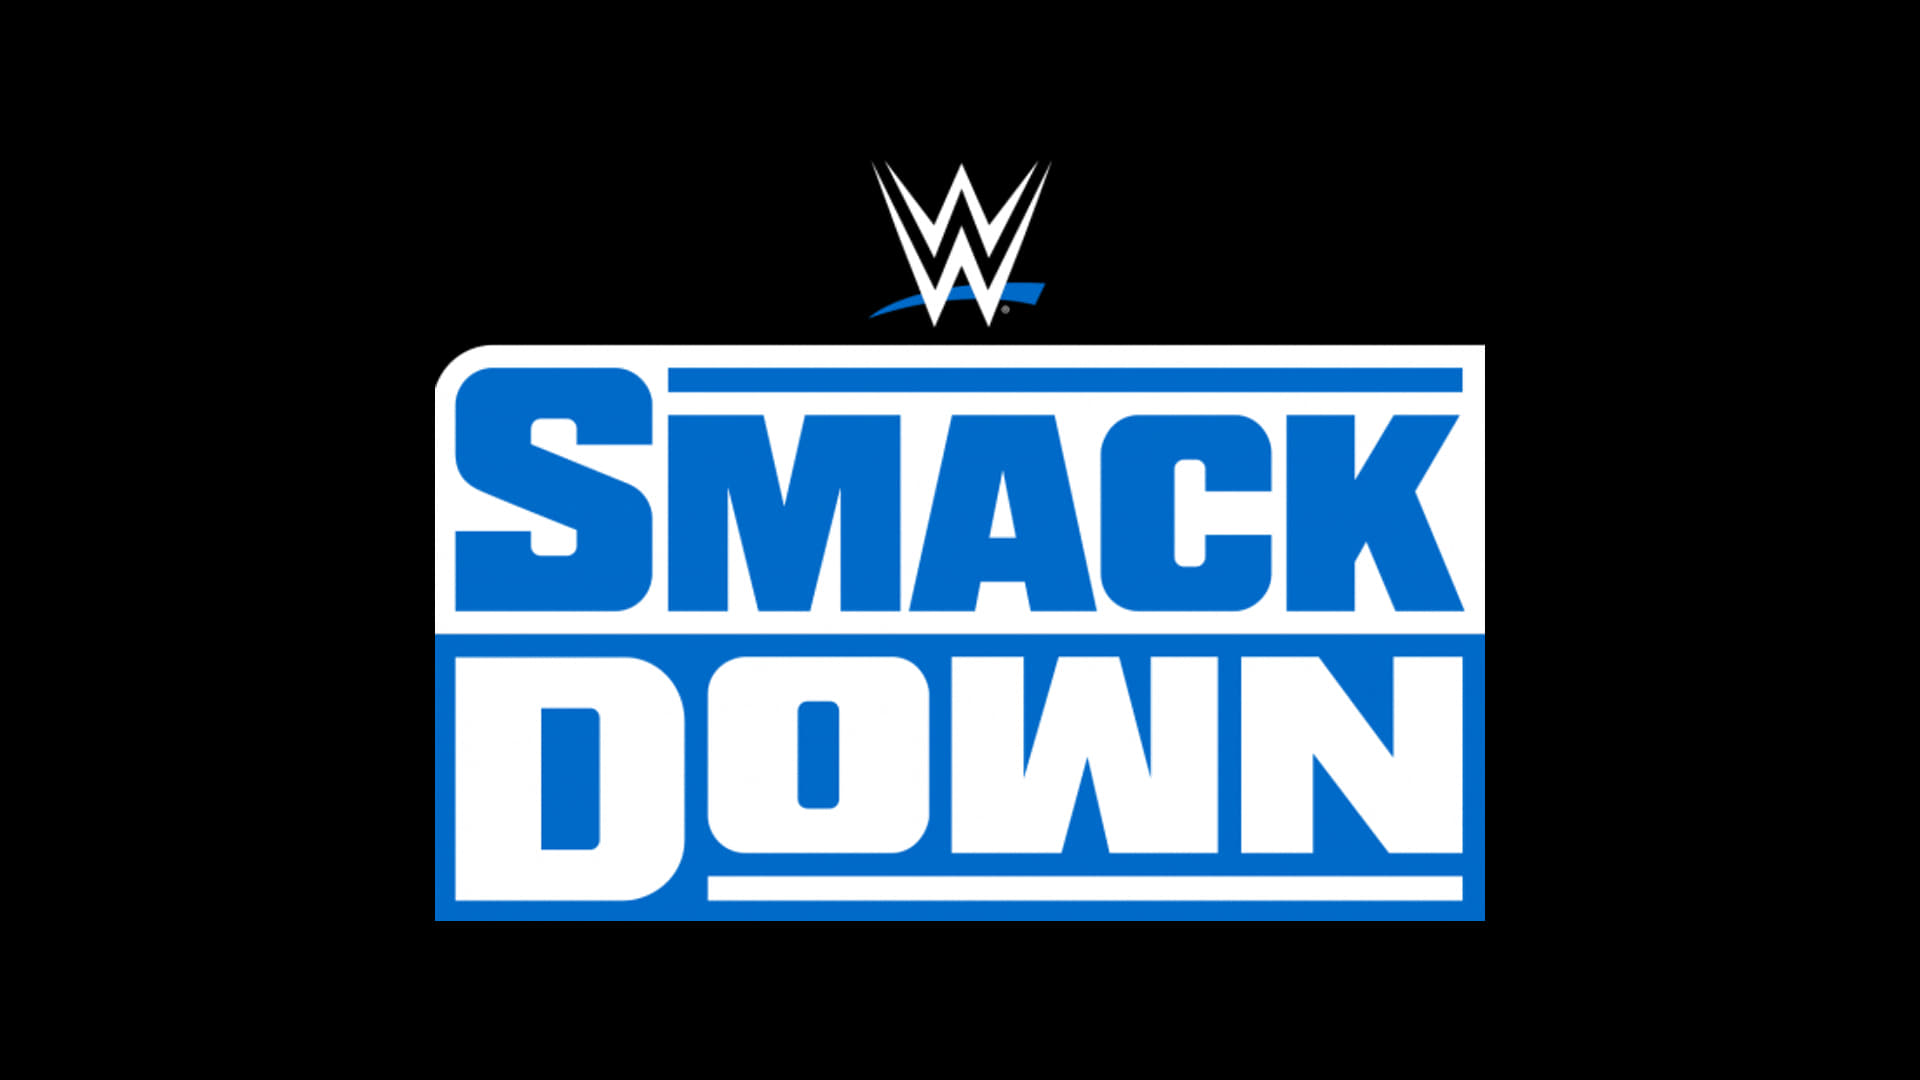 WWE SmackDown Trailer